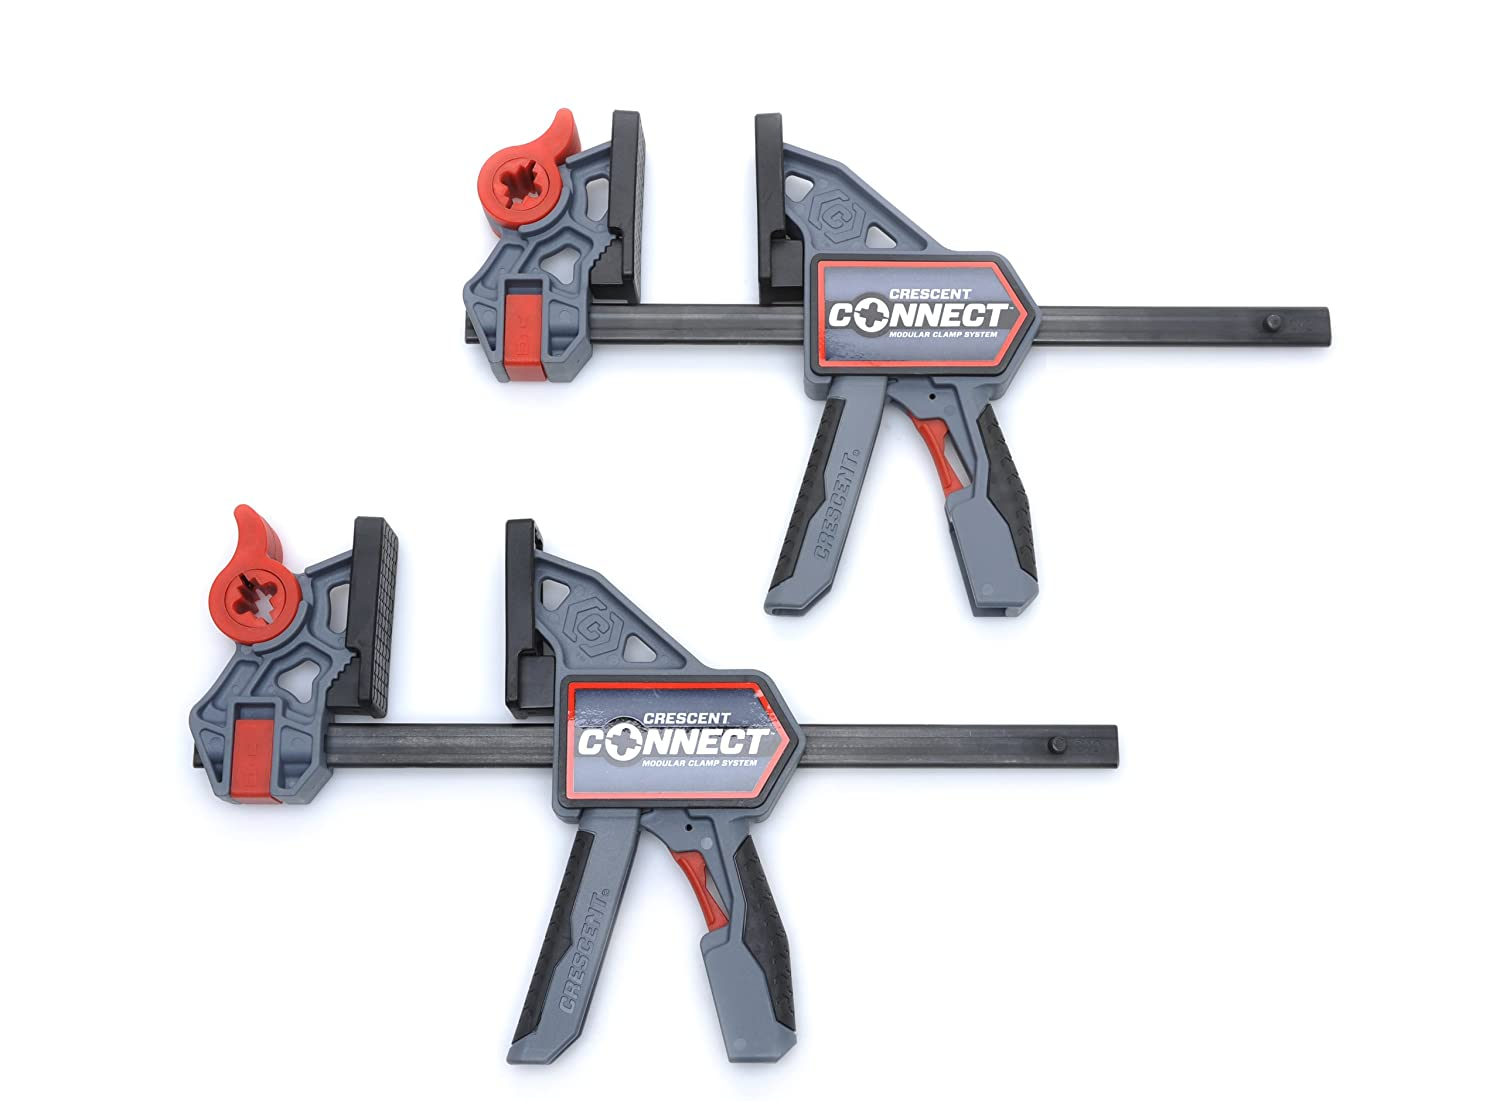 Crescent CC12PVAD 12-Inch Connect Hand Clamp, Set of 2